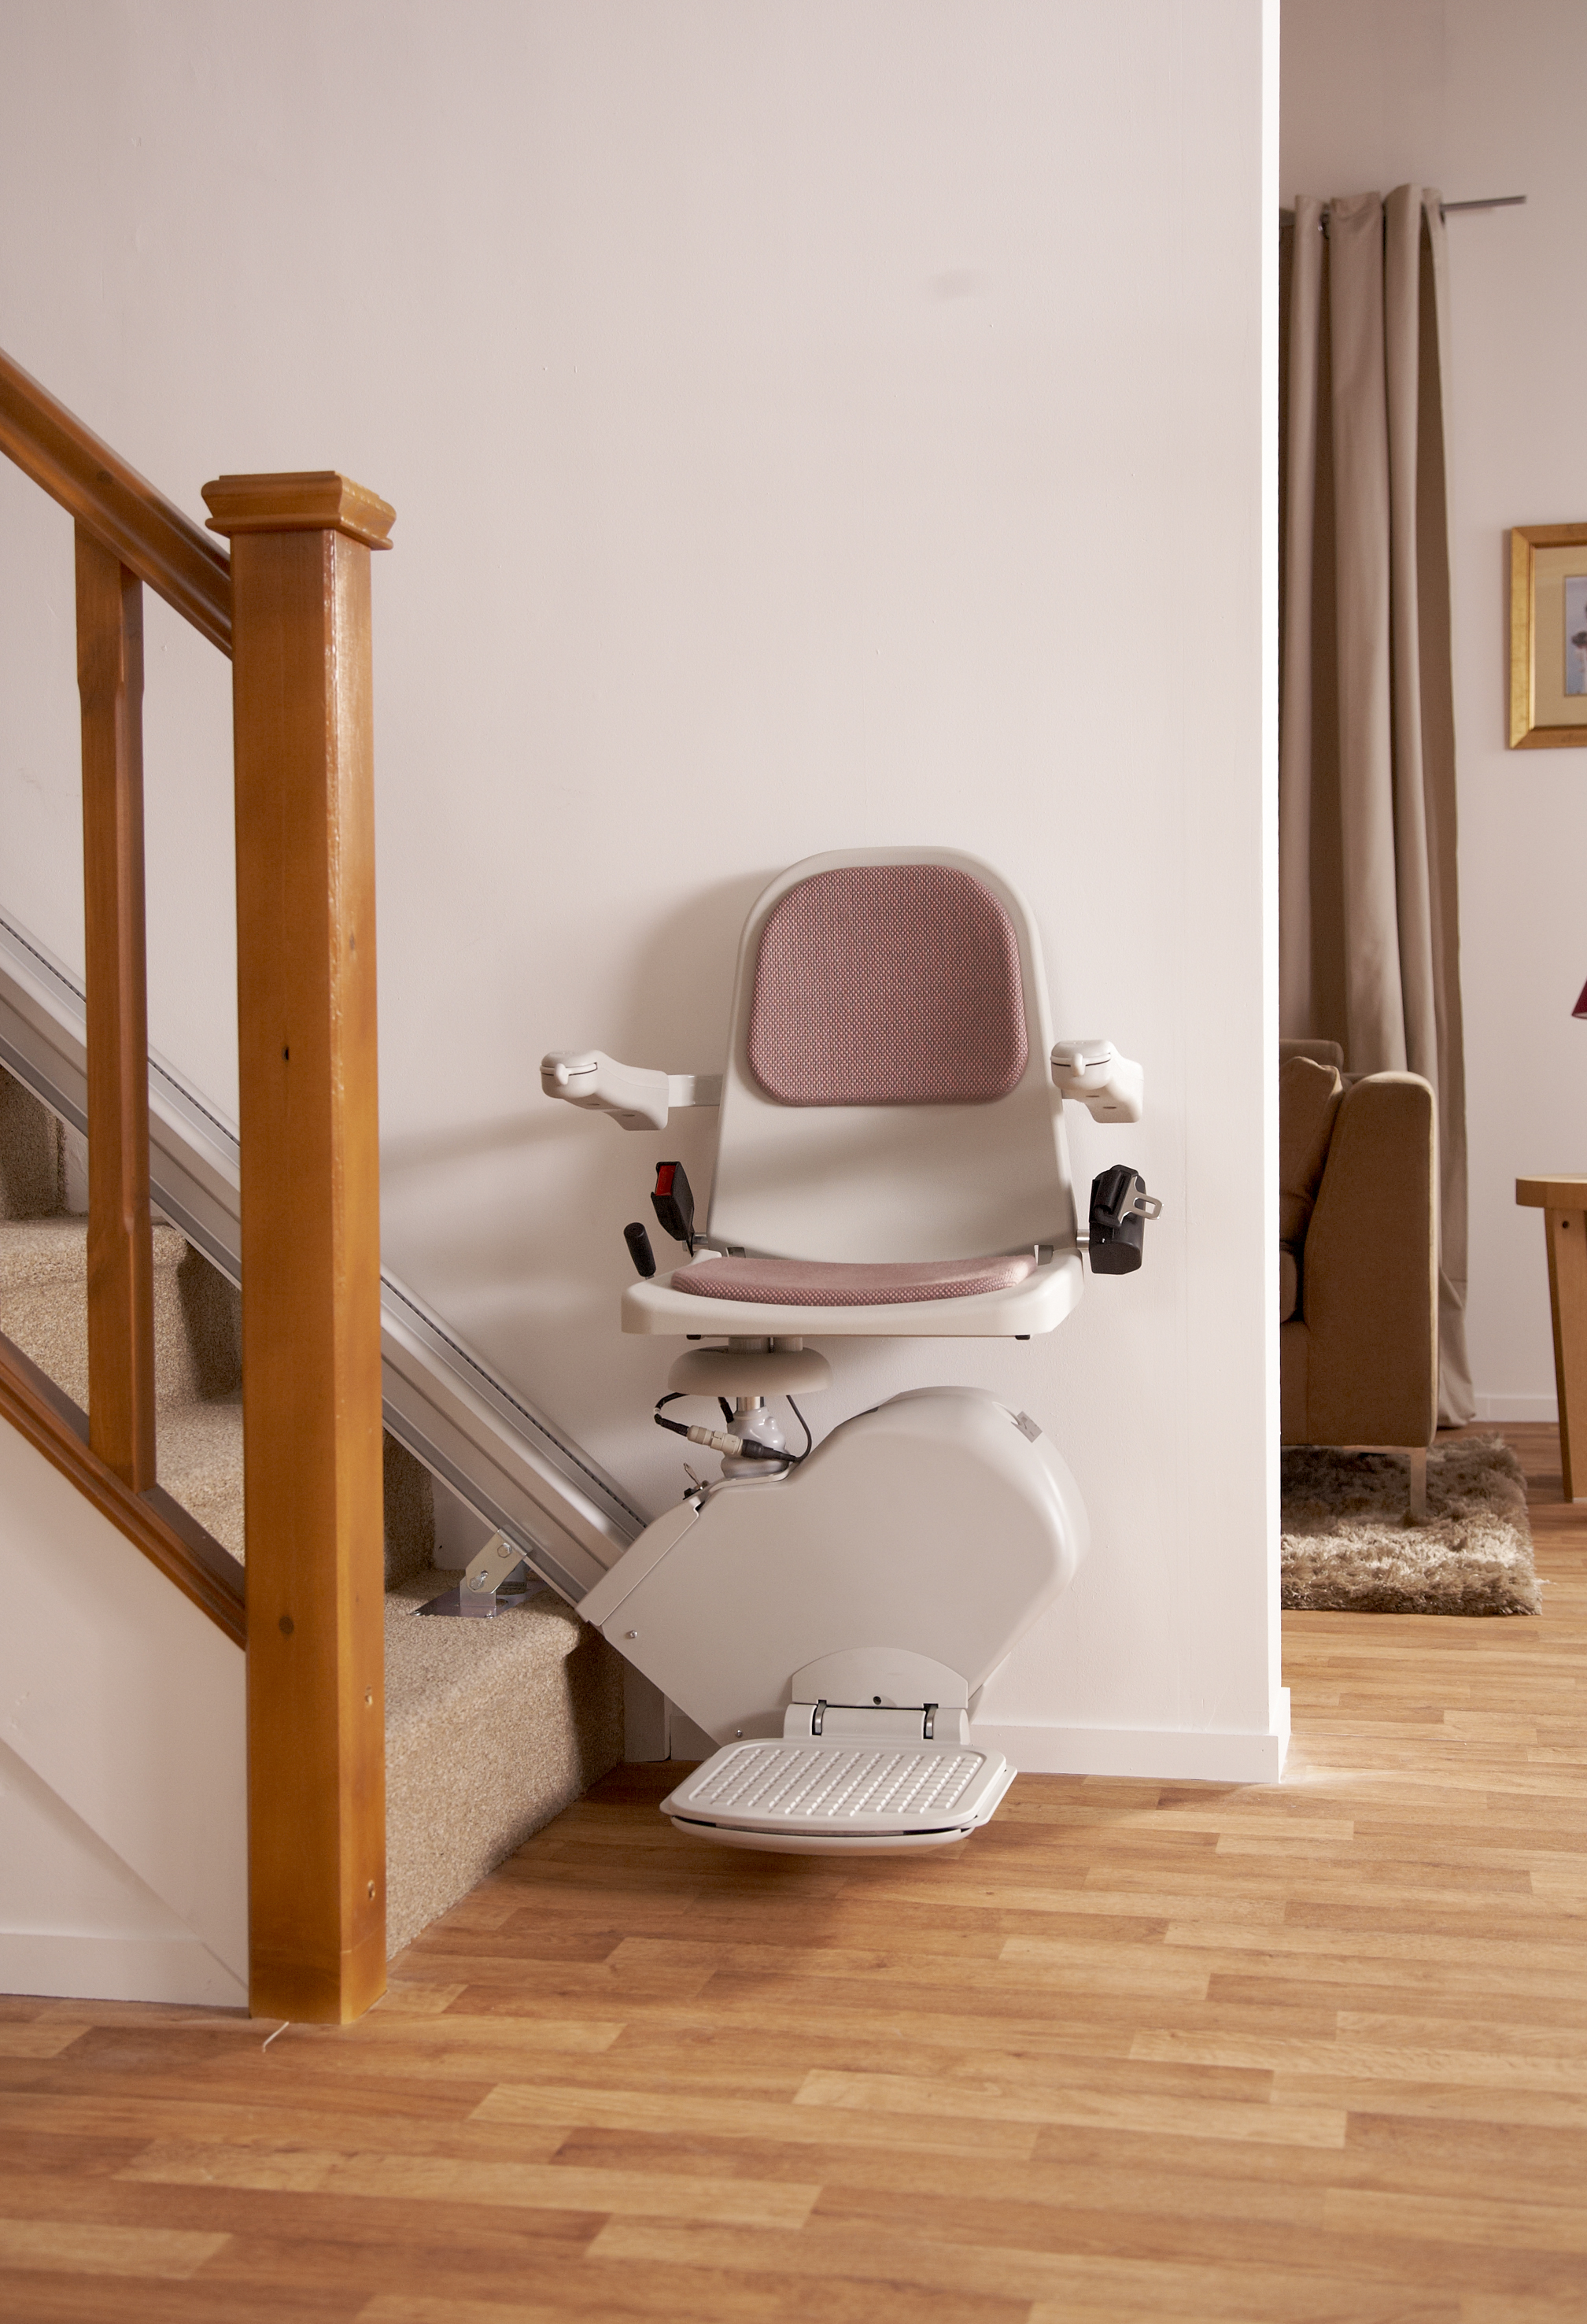 Buy or List Your Used Stair Lift for Free